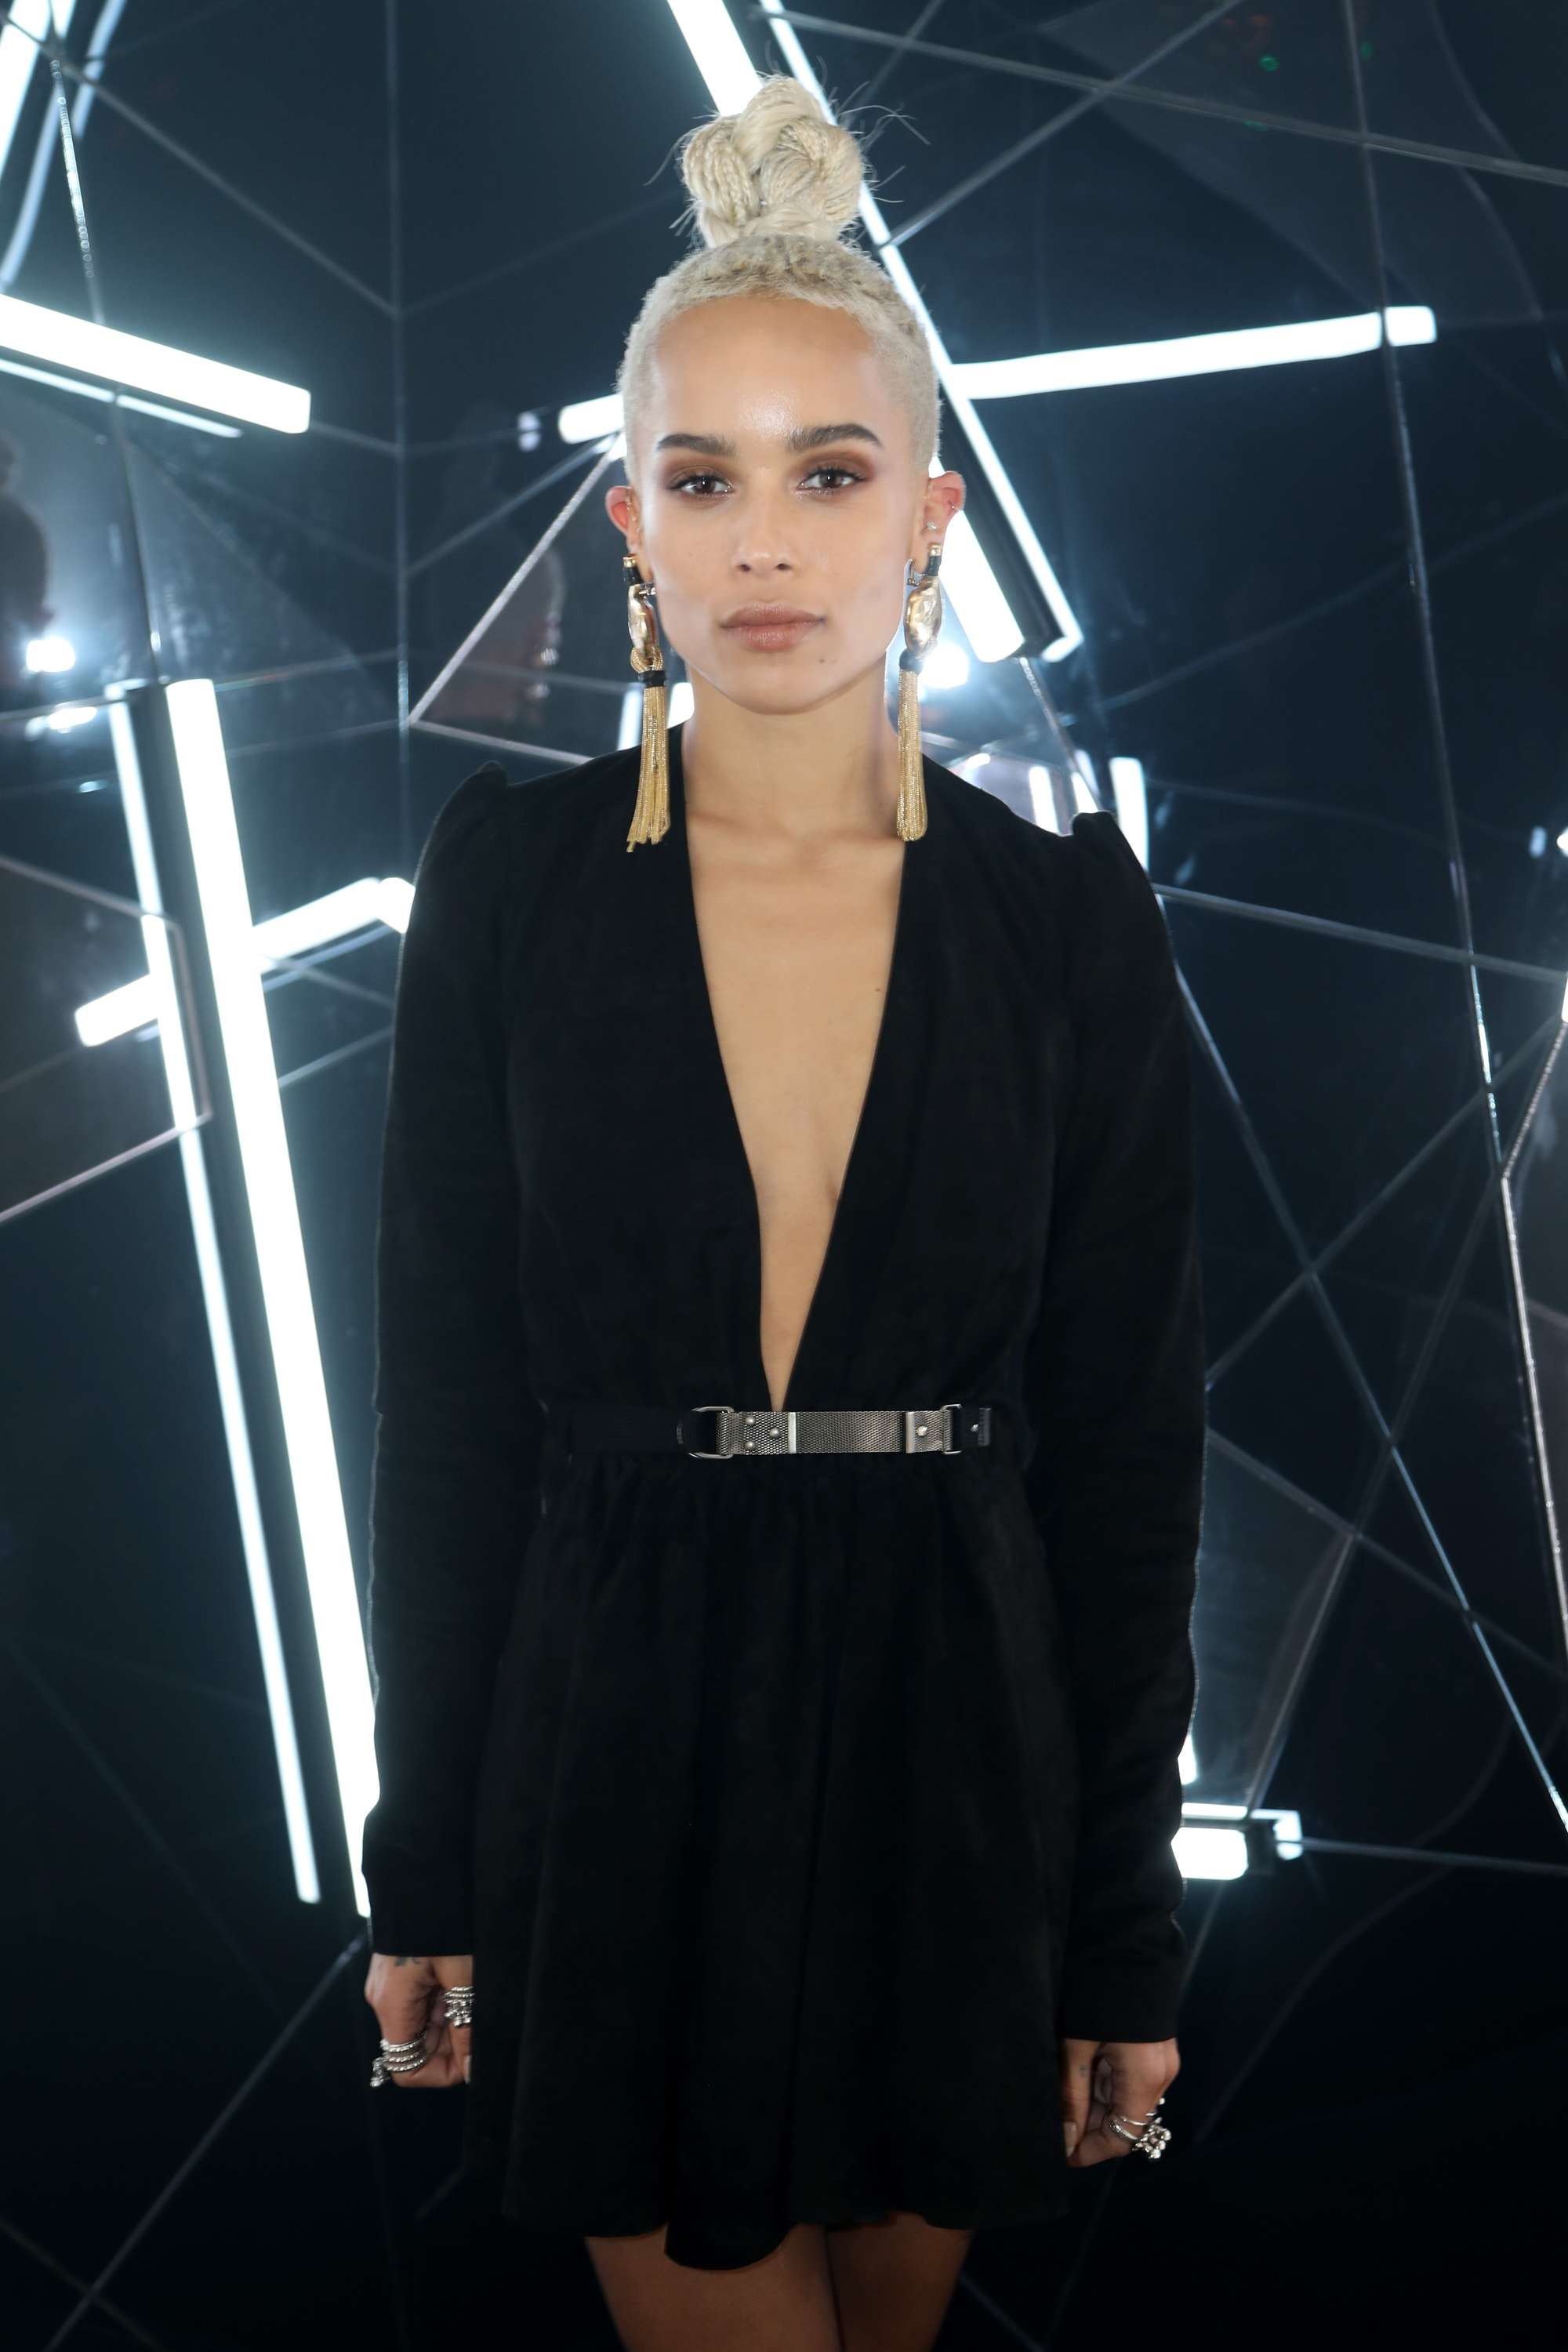 zoe kravitz at ysl event in black dress and top knot undercut hairstyle